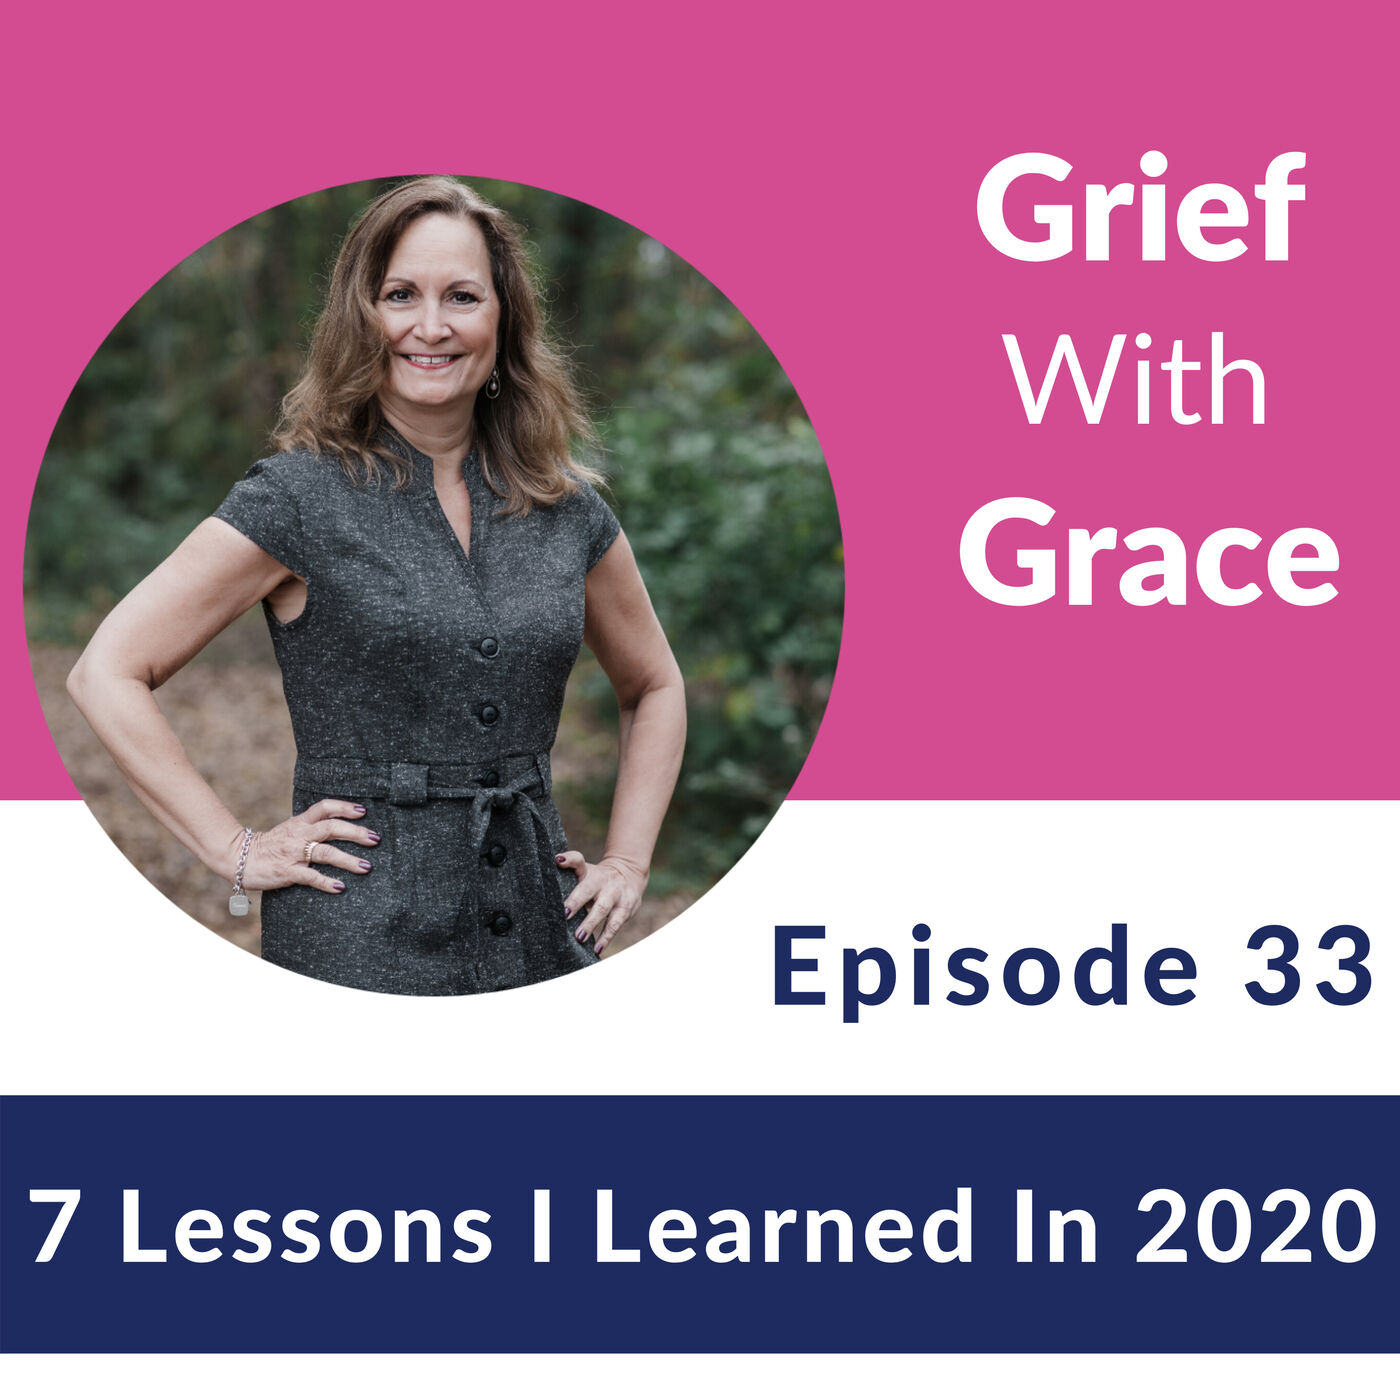 33. 7 Lessons I Learned In 2020